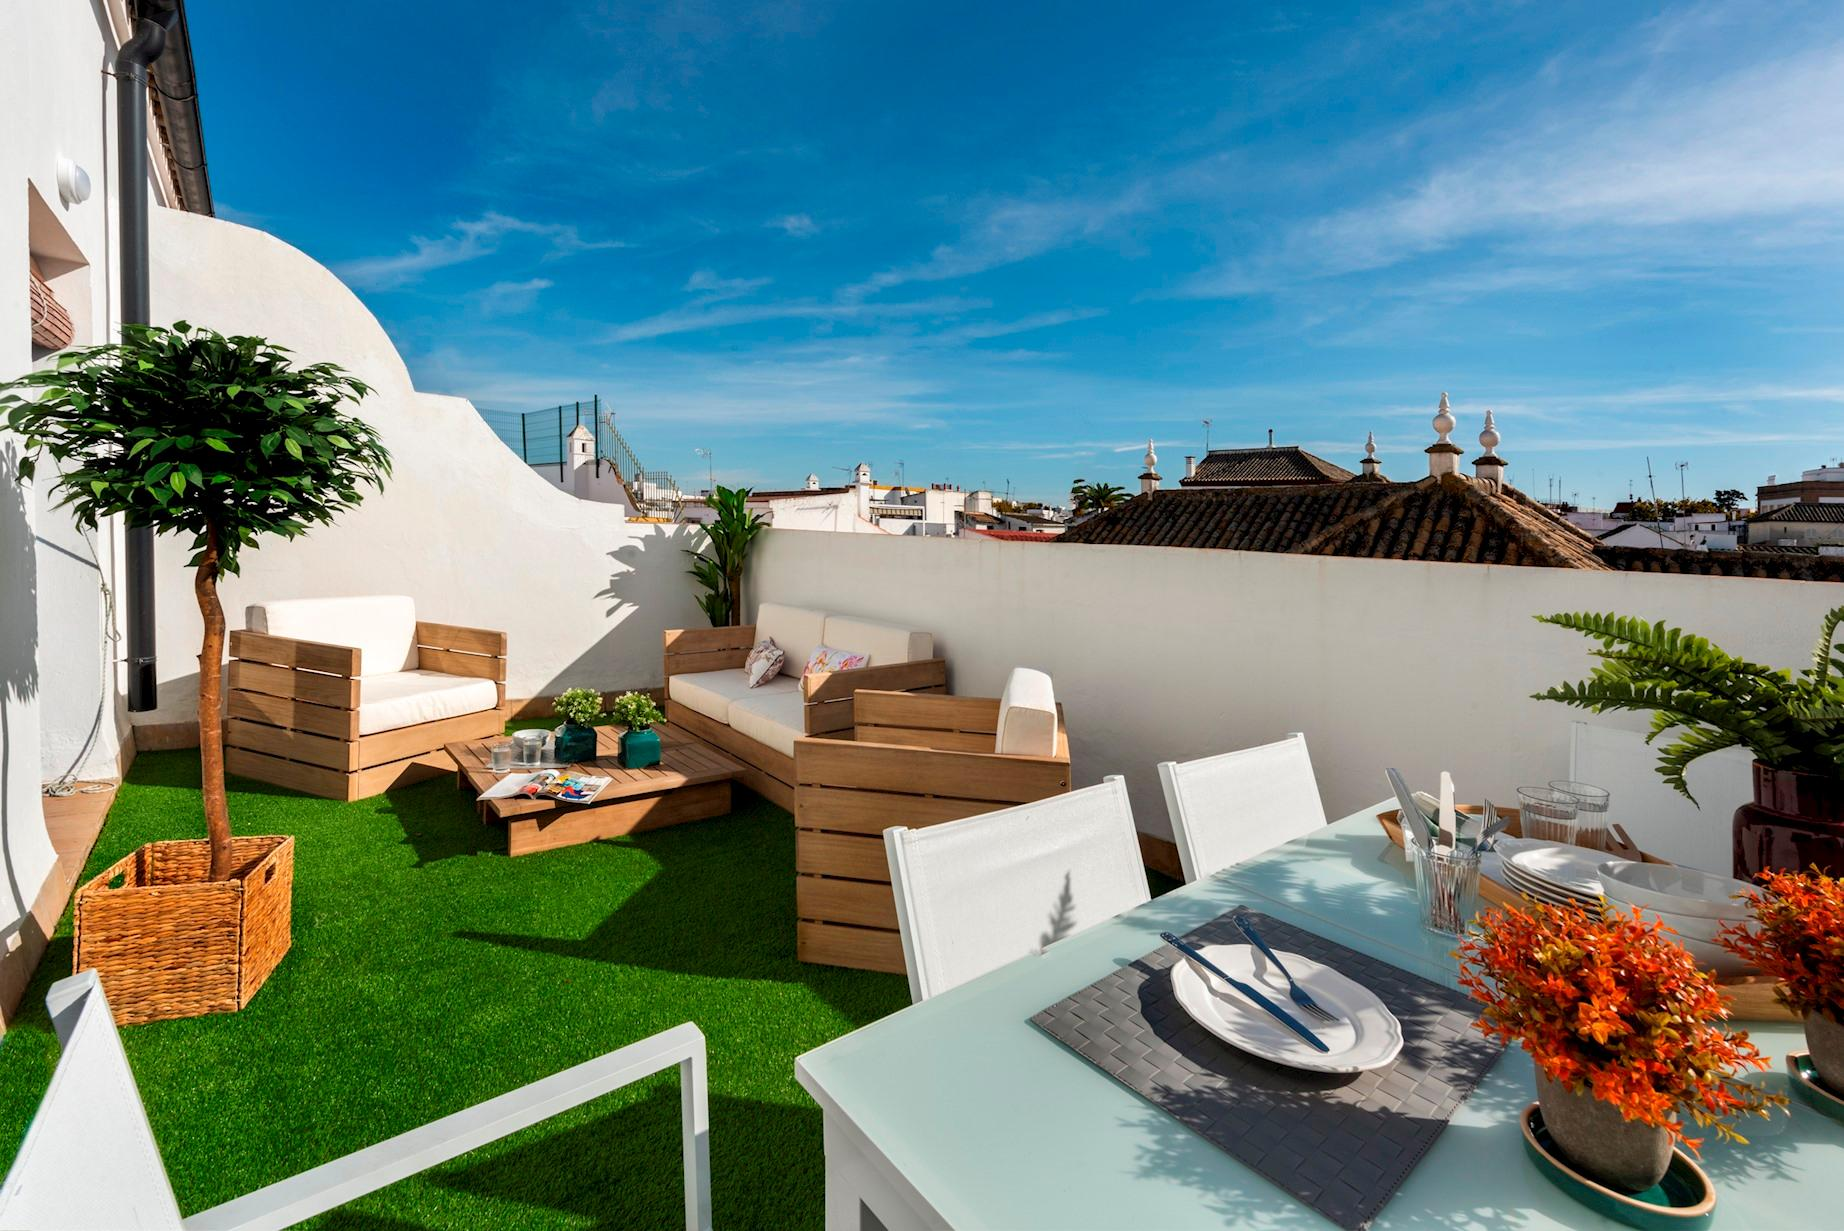 Property Image 1 - Outstanding Penthouse in a Typical Sevillian Quarter